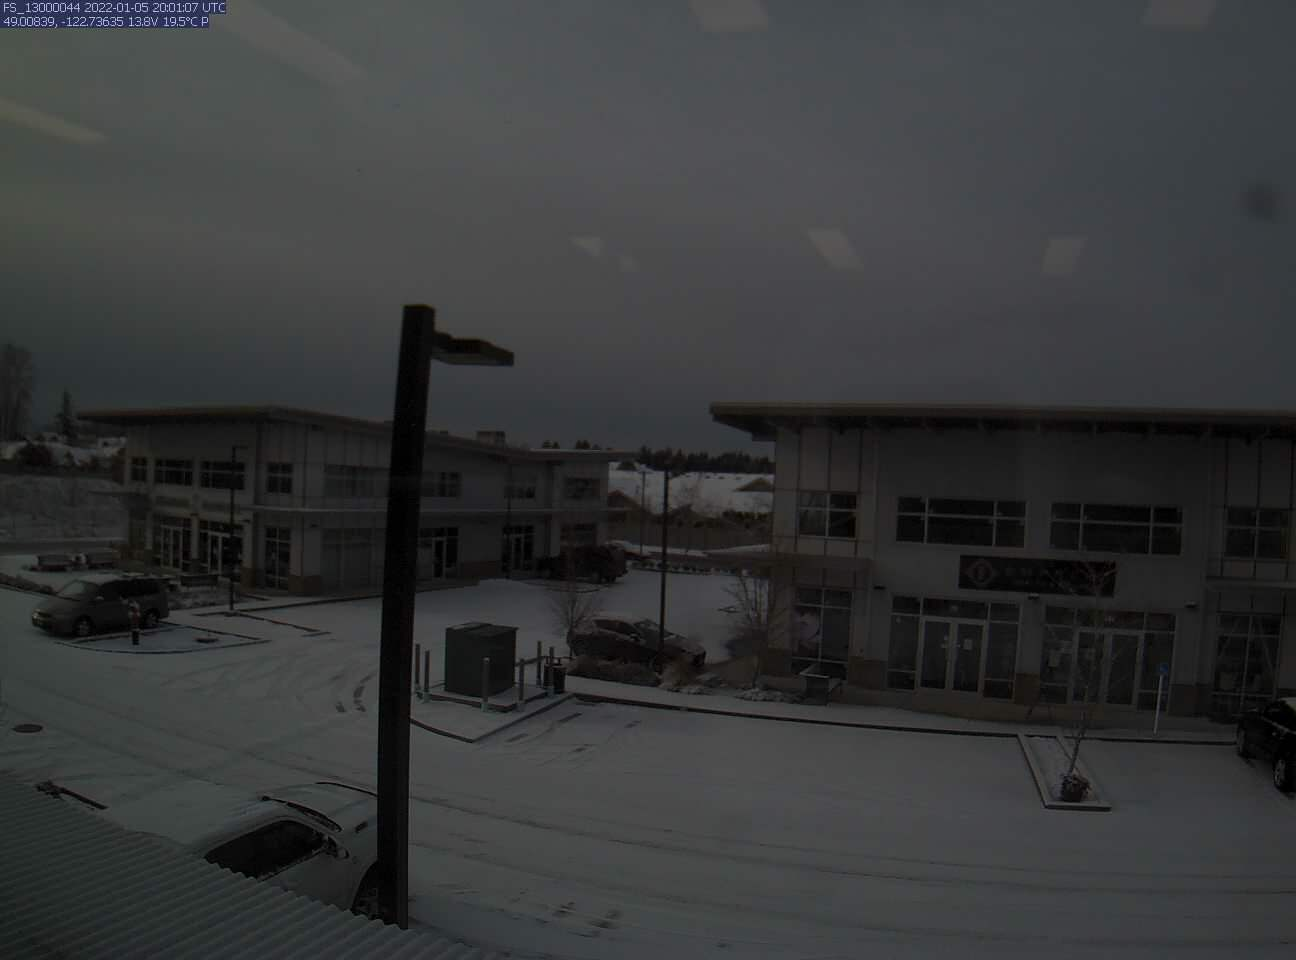 Pulpit Lake (4A09P) Snow Station Satellite Camera